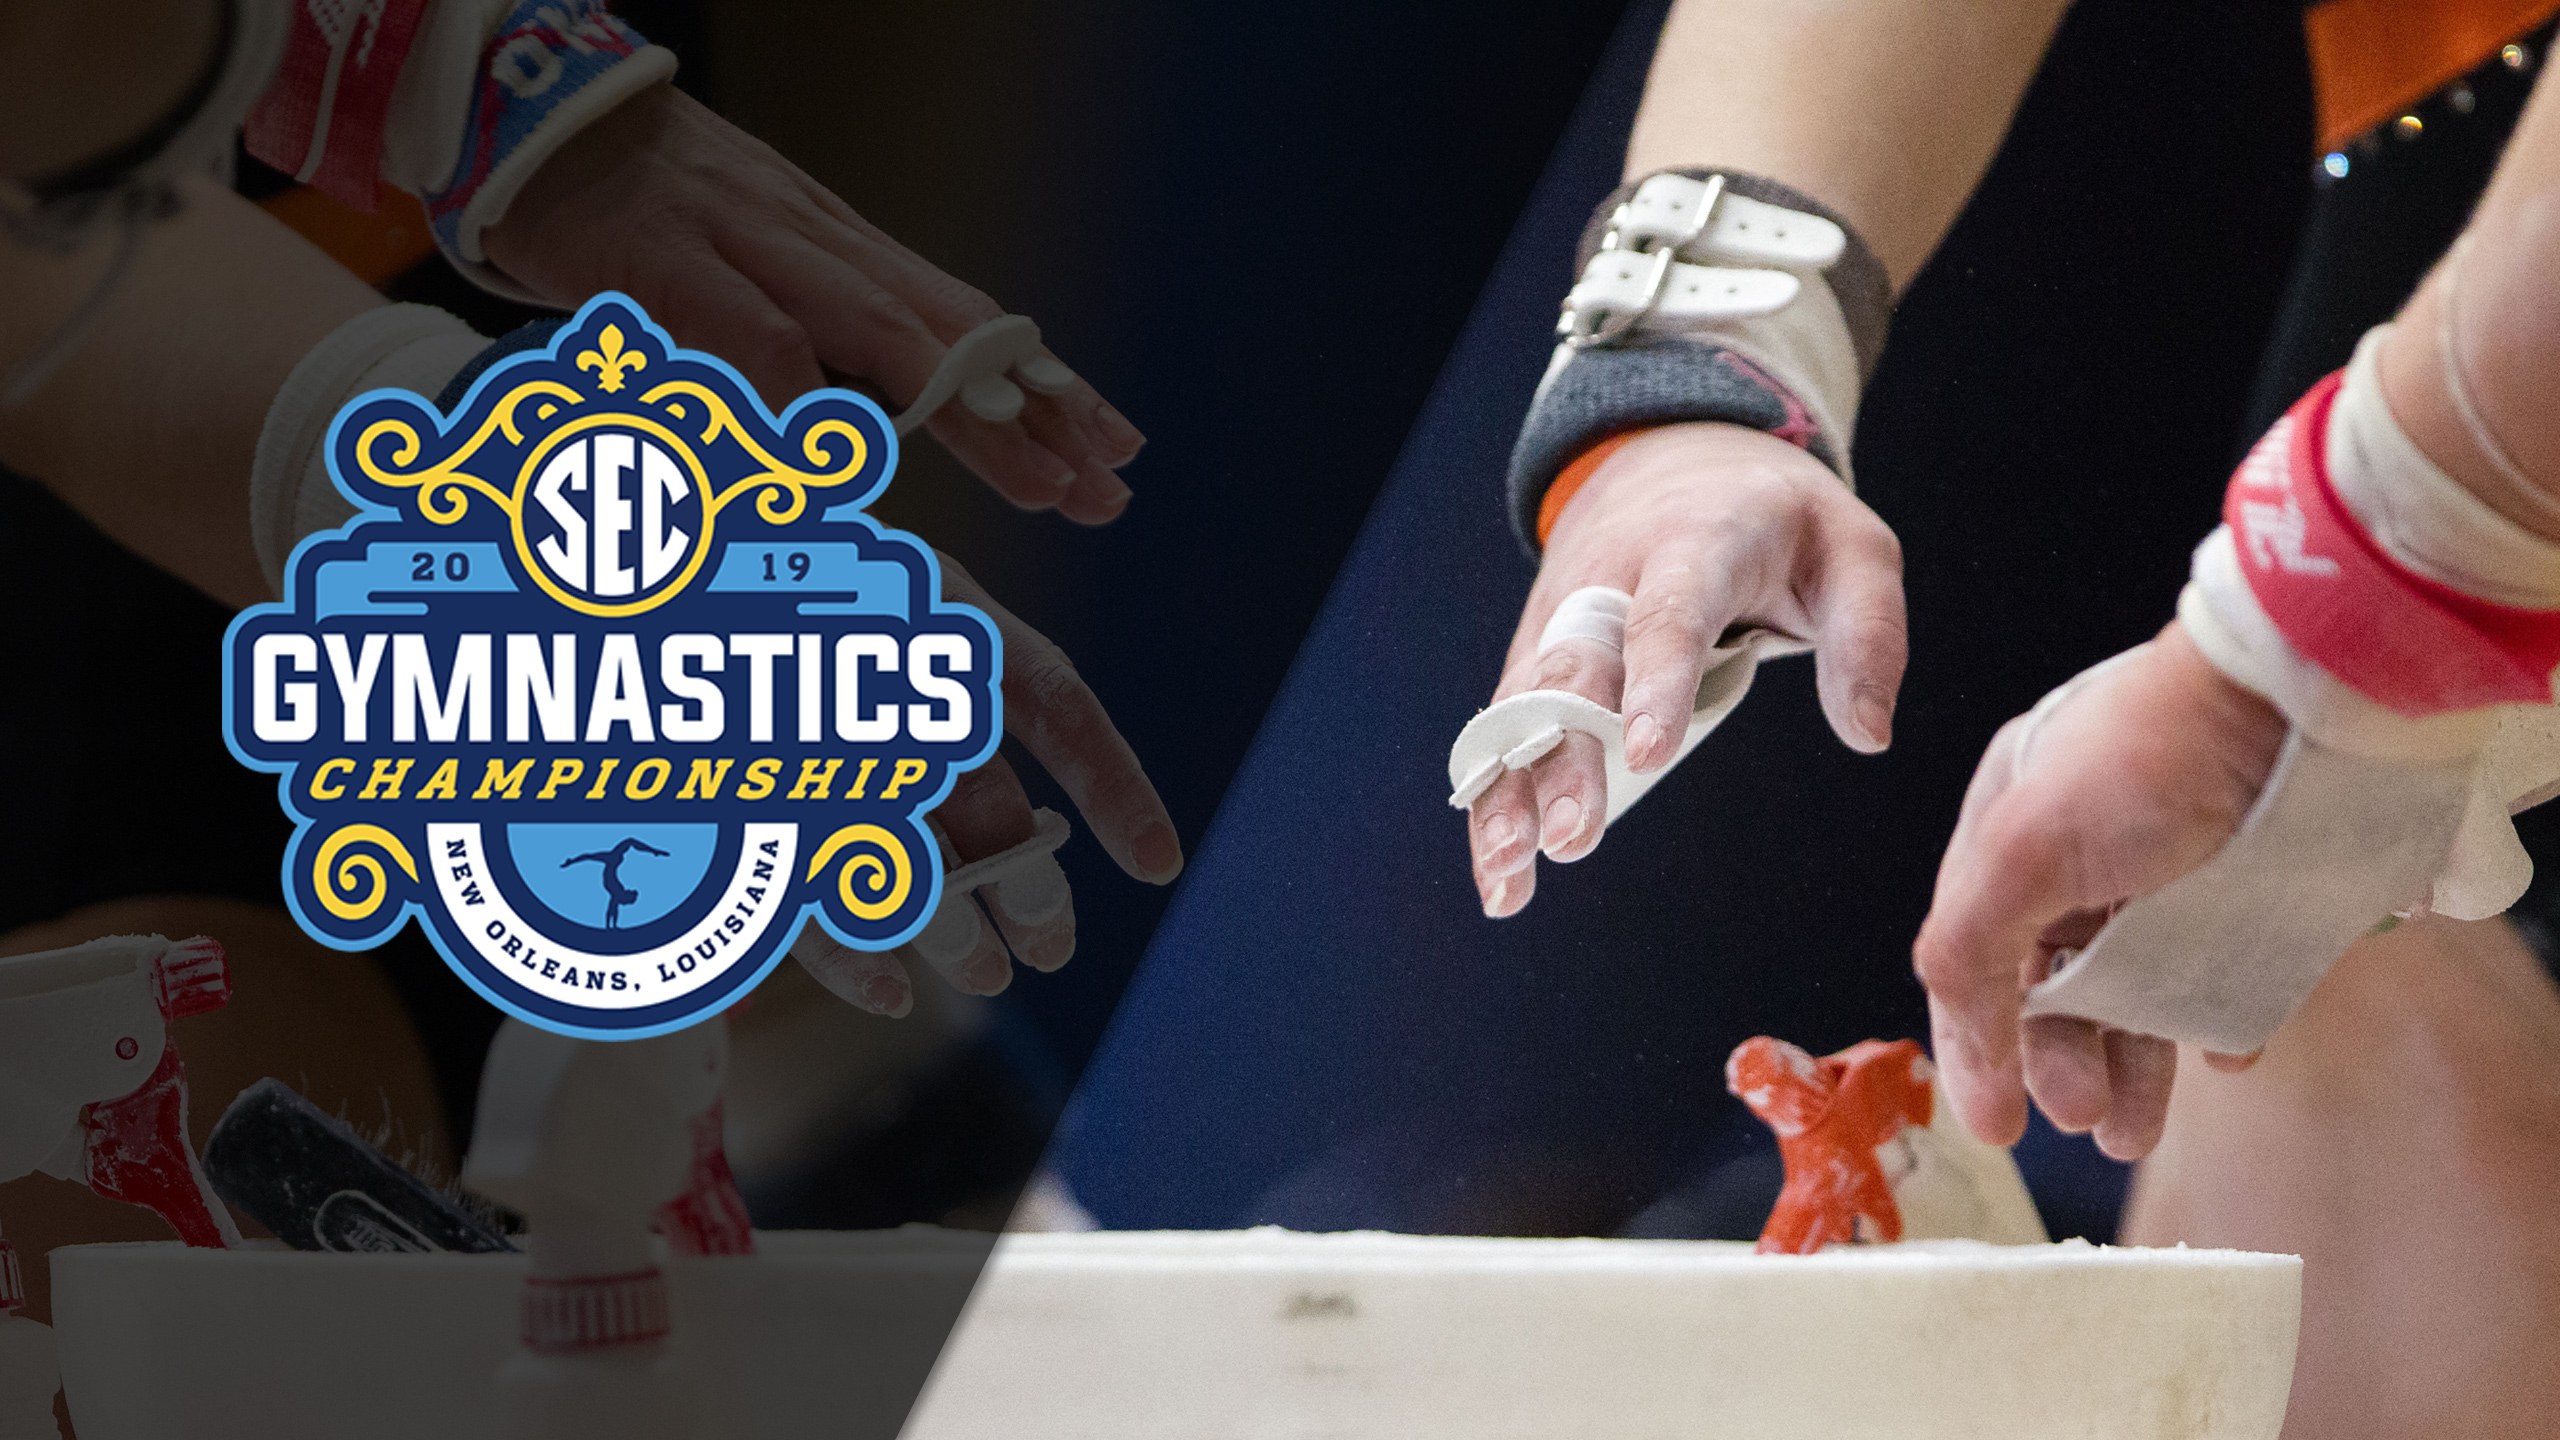 SEC Women's Gymnastics Championship (Evening Session)